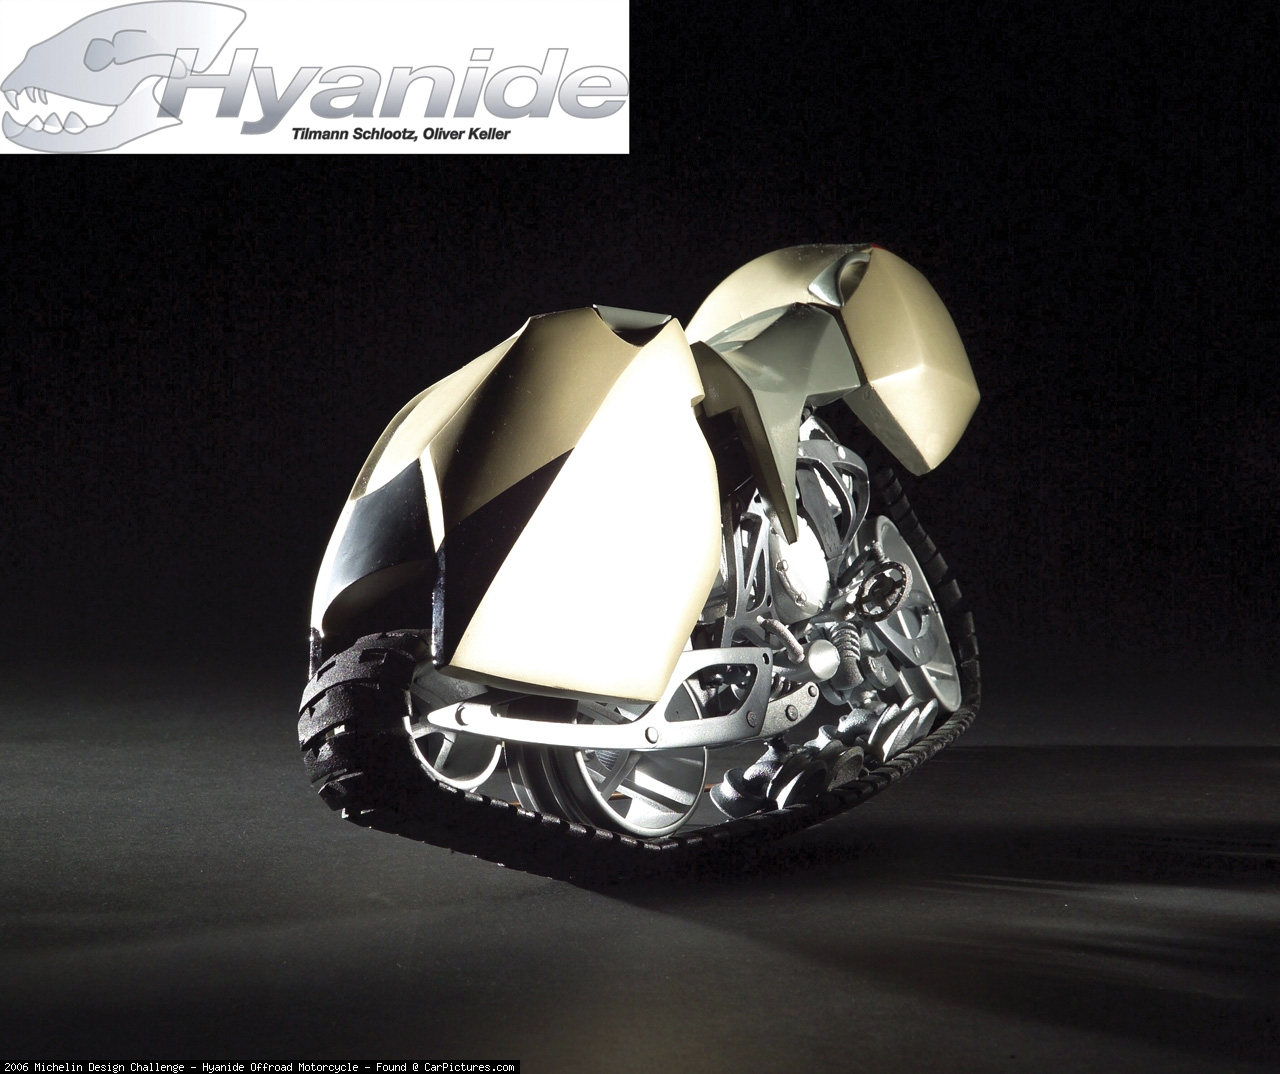 Michelin Design Hyanide Offroad Motorcycle photo 44649